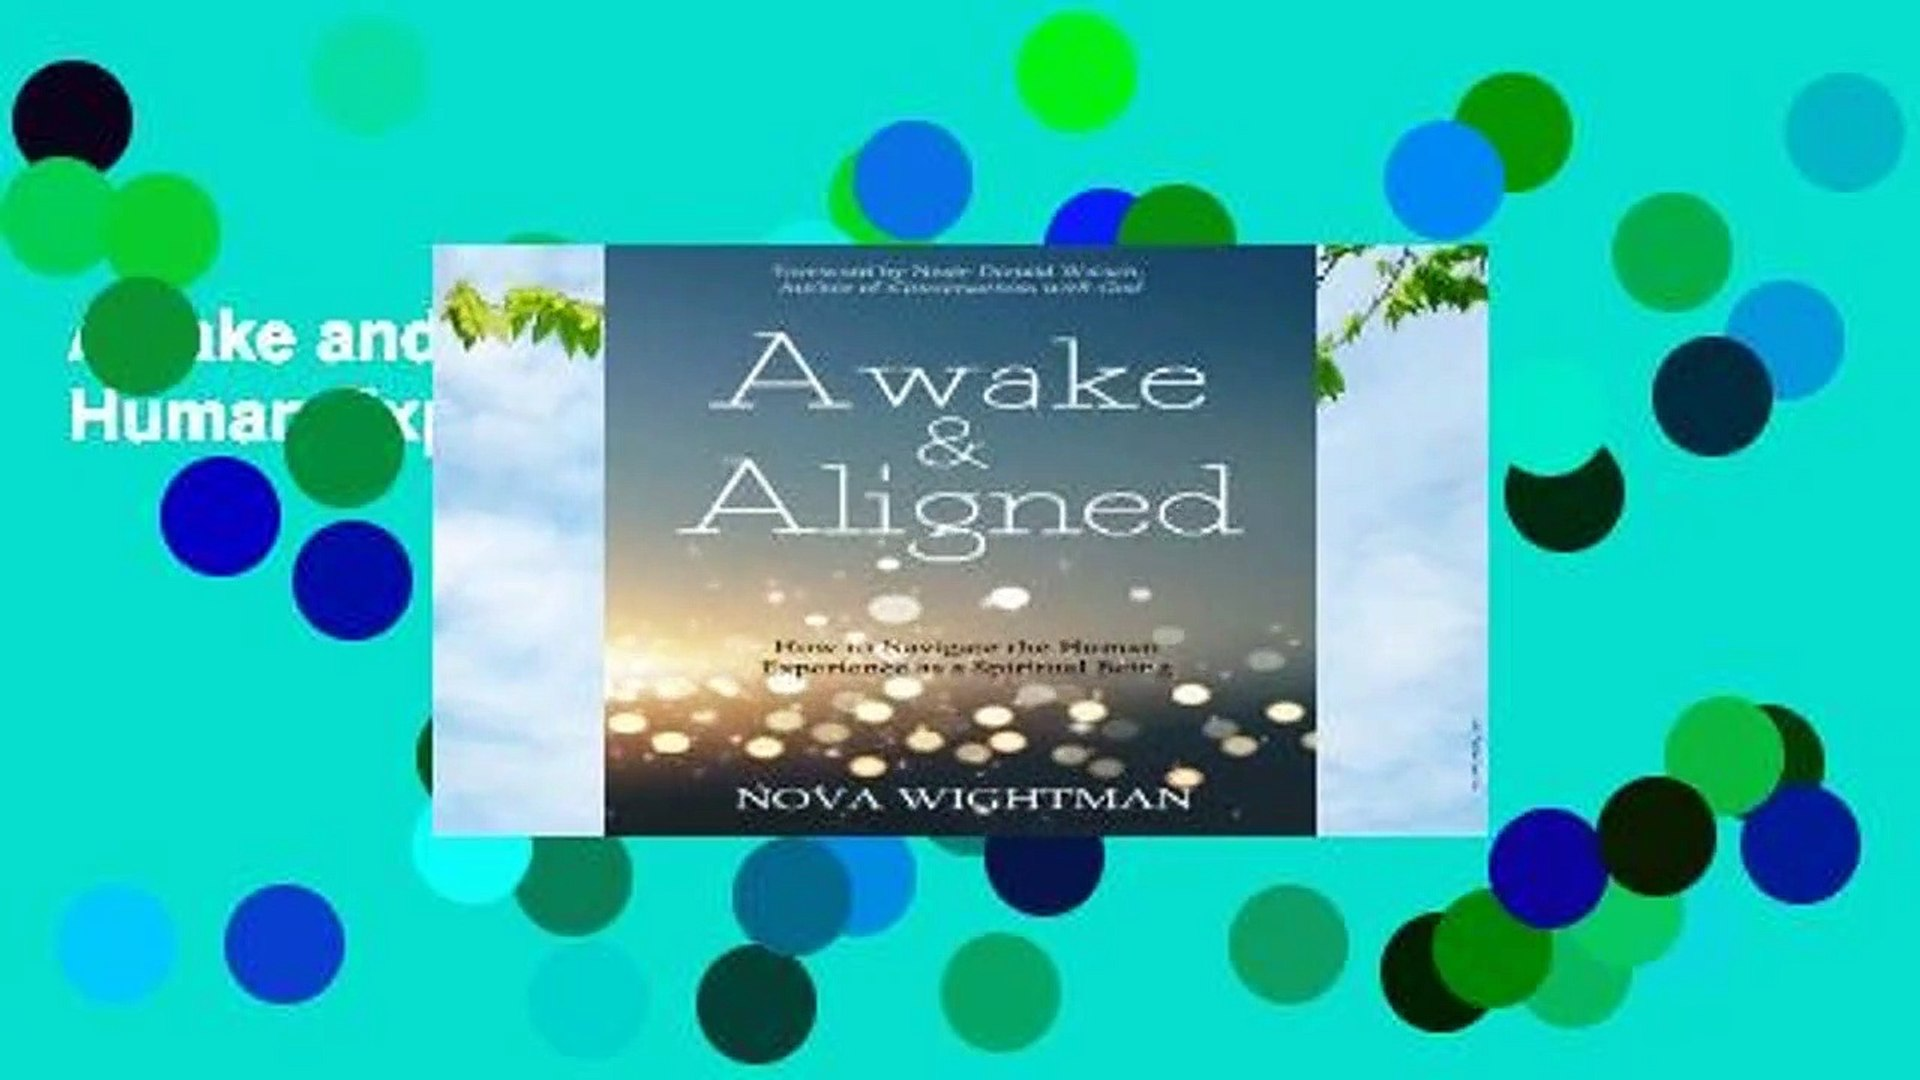 Awake and Aligned: How to Navigate the Human Experience as a Spiritual Being